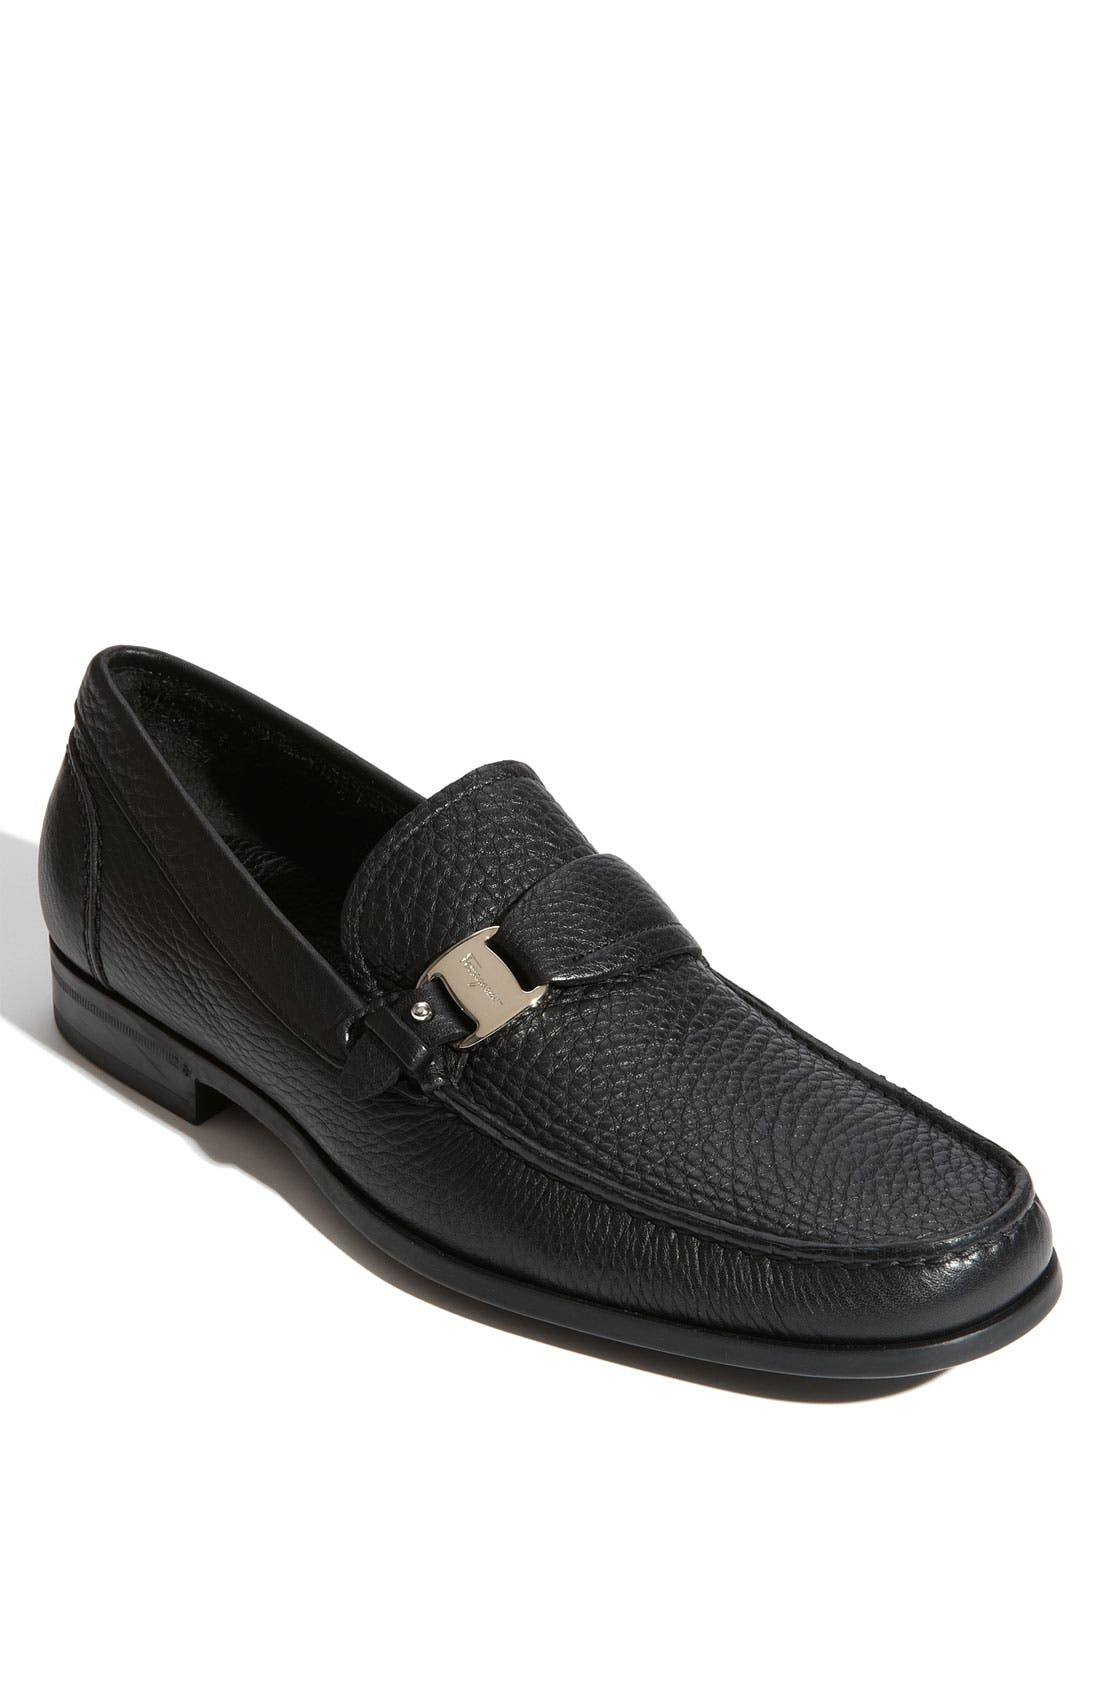 Main Image - Salvatore Ferragamo 'Bravo' Loafer (Men)